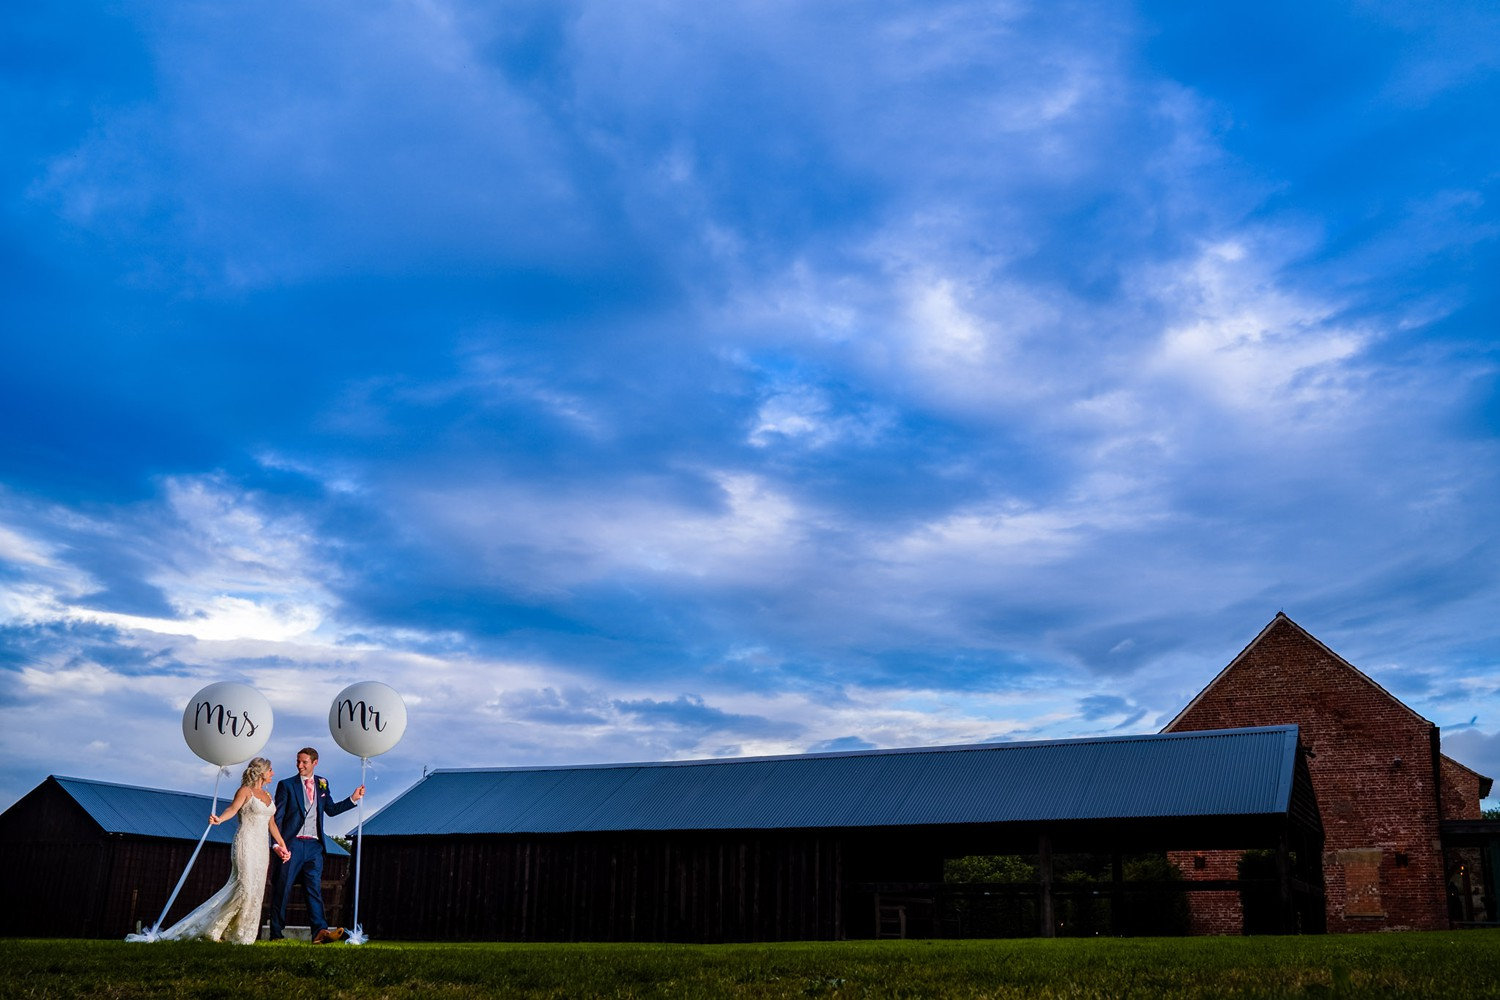 Bride & groom walking in the back gardens of Hazel Gap Barn holding giant Mr & Mrs balloon's with a dramatic blue sky